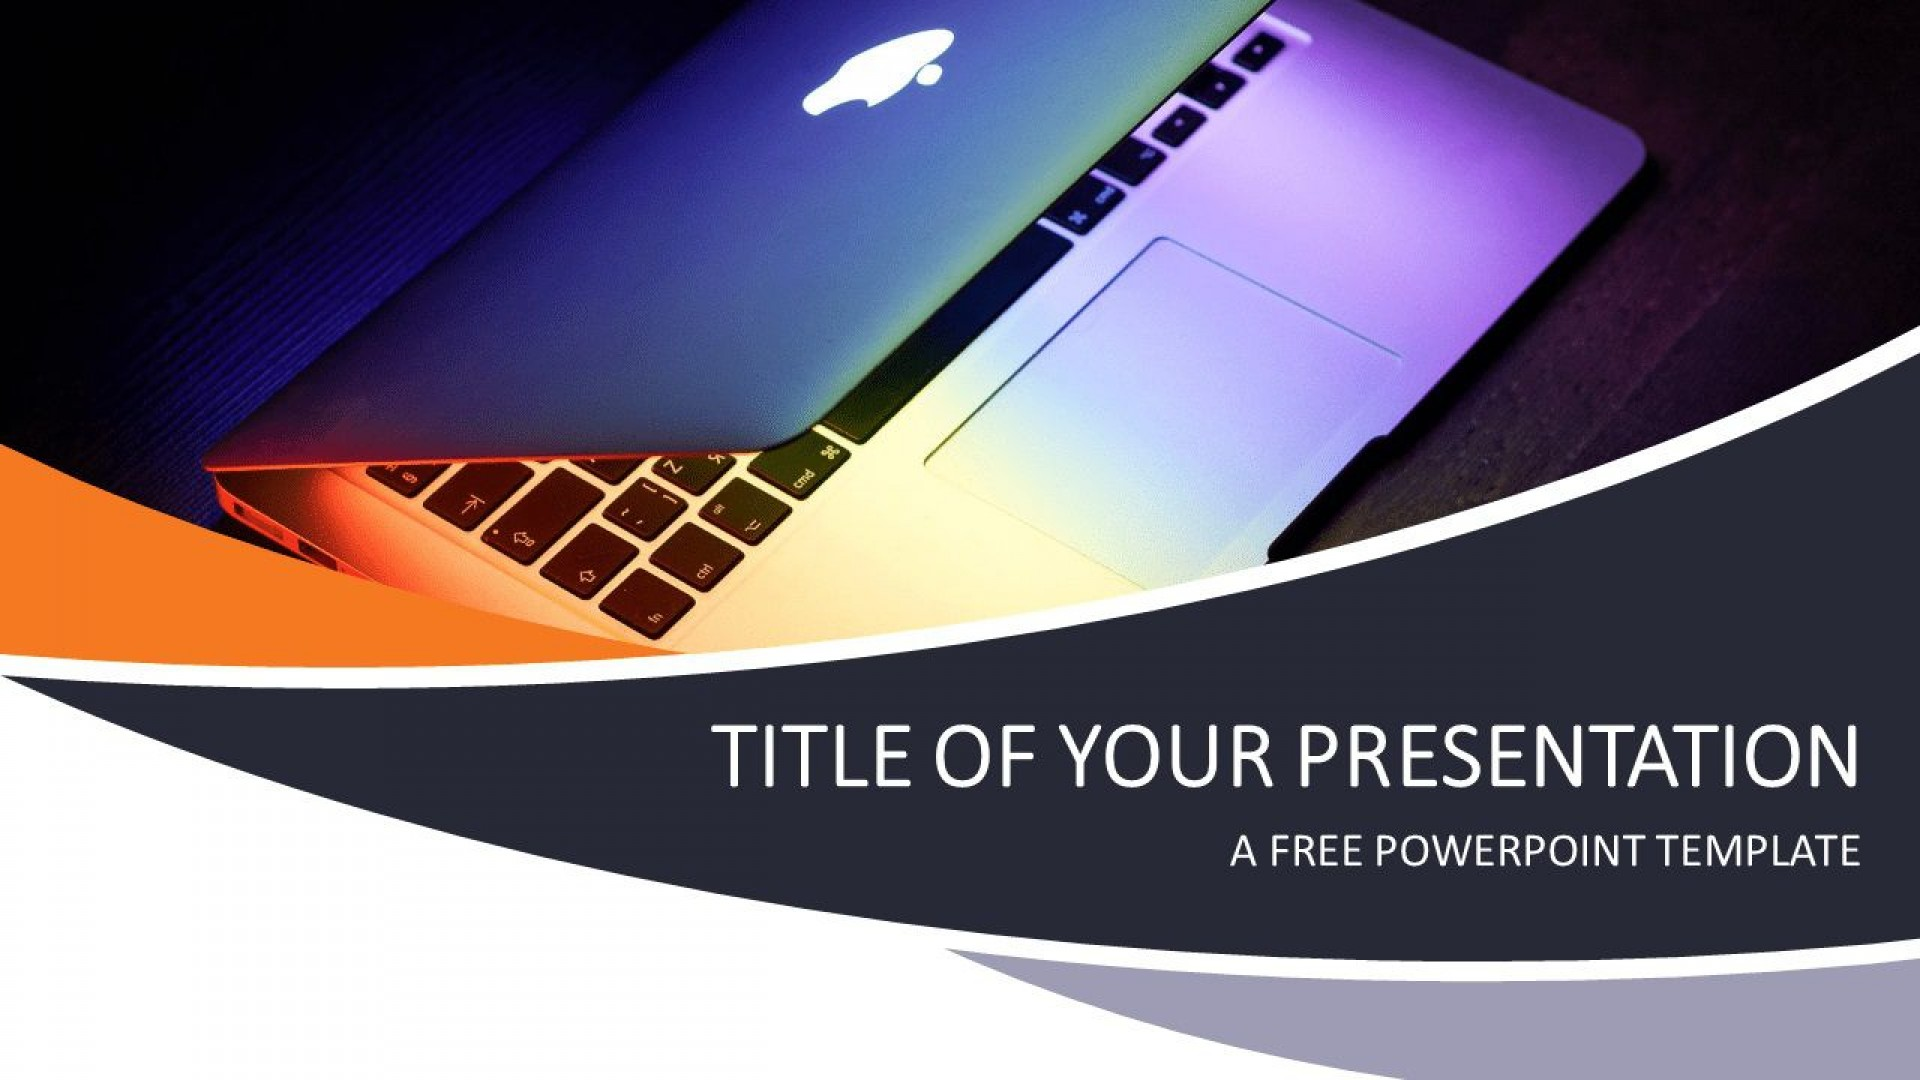 008 Striking Free Technology Powerpoint Template Idea  Templates Animated Information Download1920